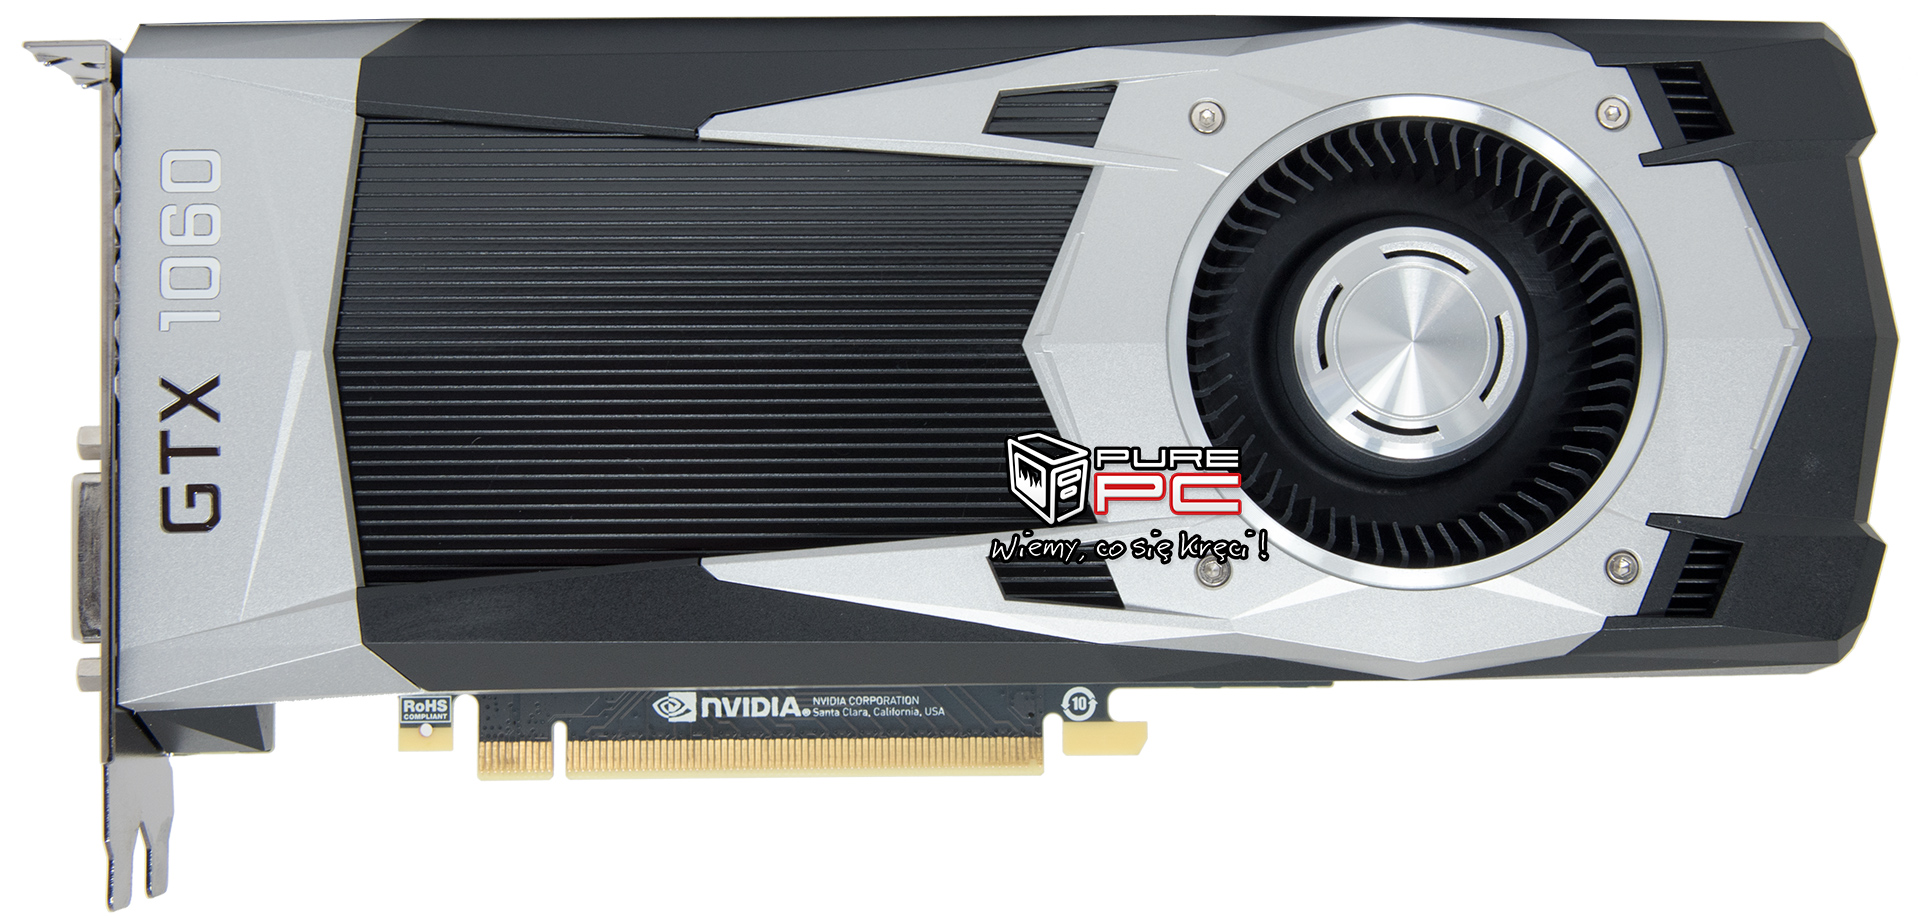 NVIDIA GeForce GTX 1060 Pictured in All its Glory